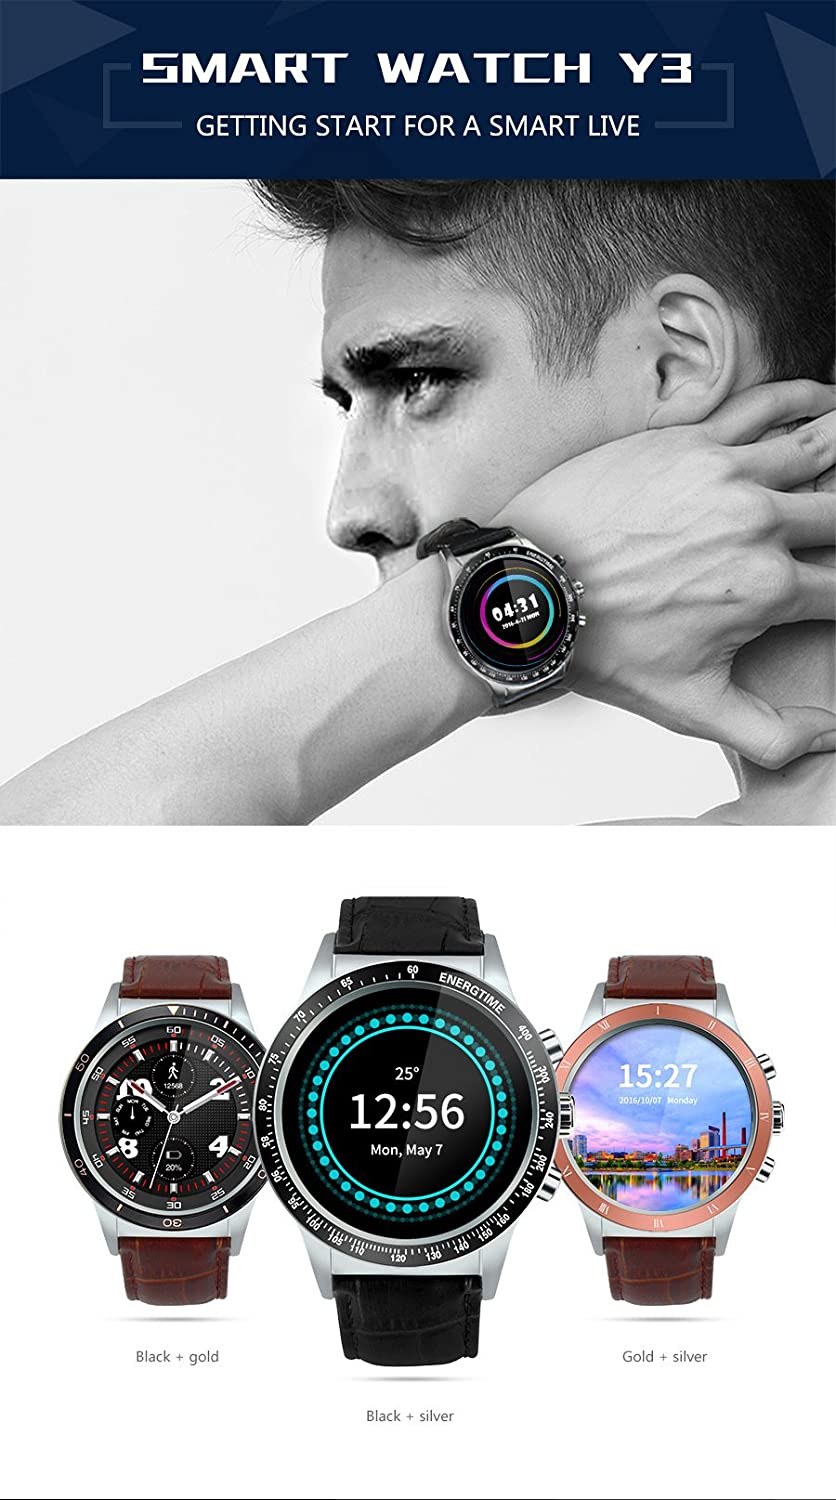 Amazon.com: ⌚ LEMFO Y3 The King - Android 5.1 Smart Watch with SIM Slot Waterproof Bluetooth GPS # Man/Woman (Silver and Black): Cell Phones & Accessories